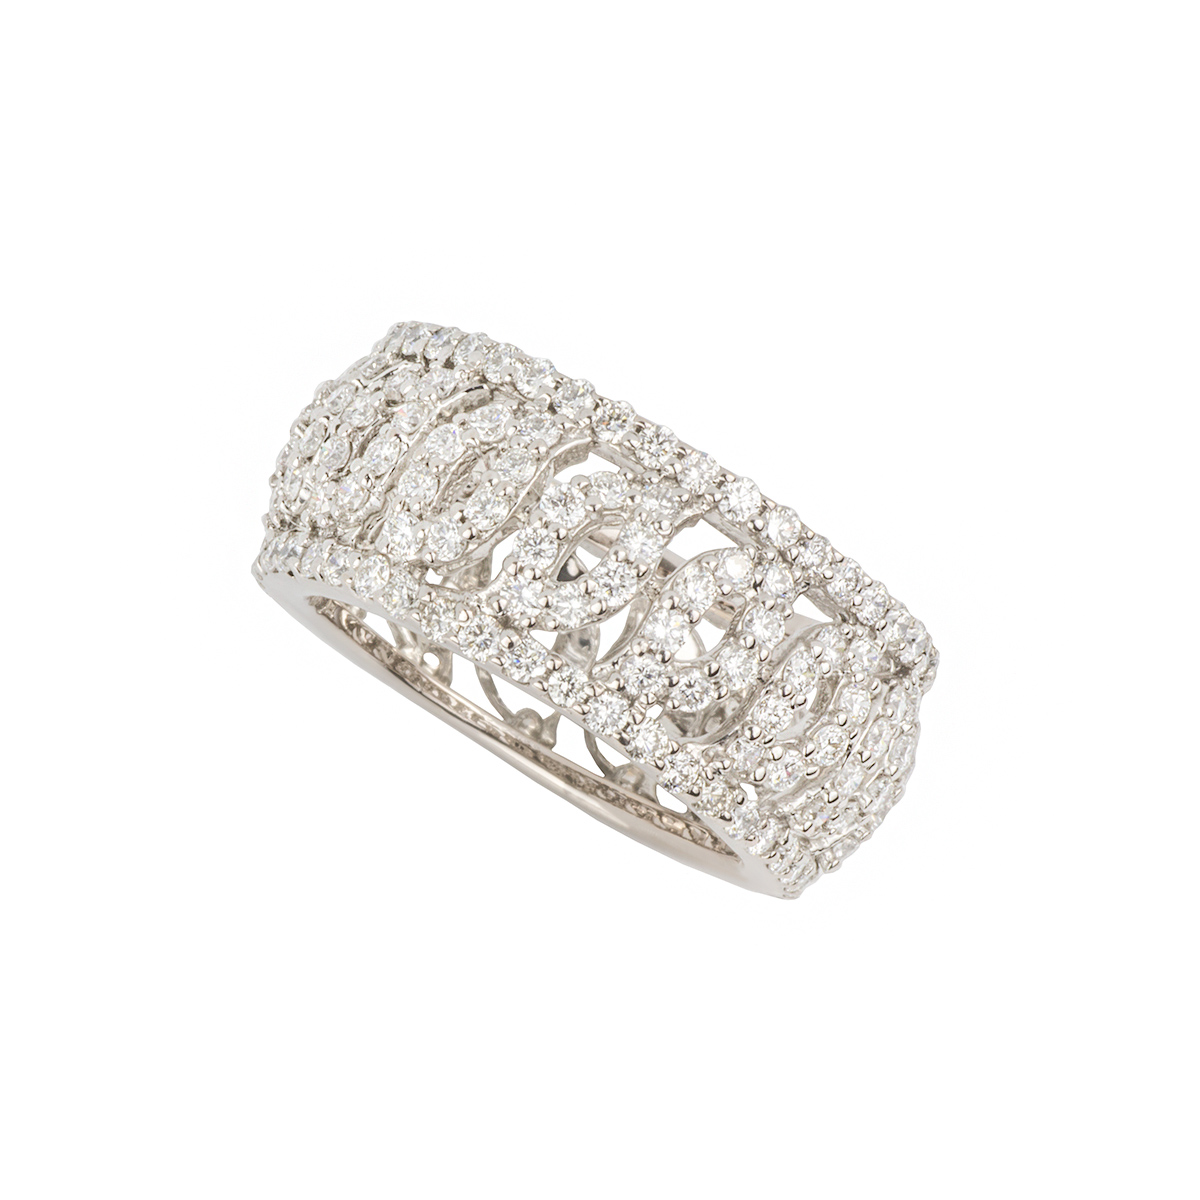 18k White Gold Diamond Set Dress Ring